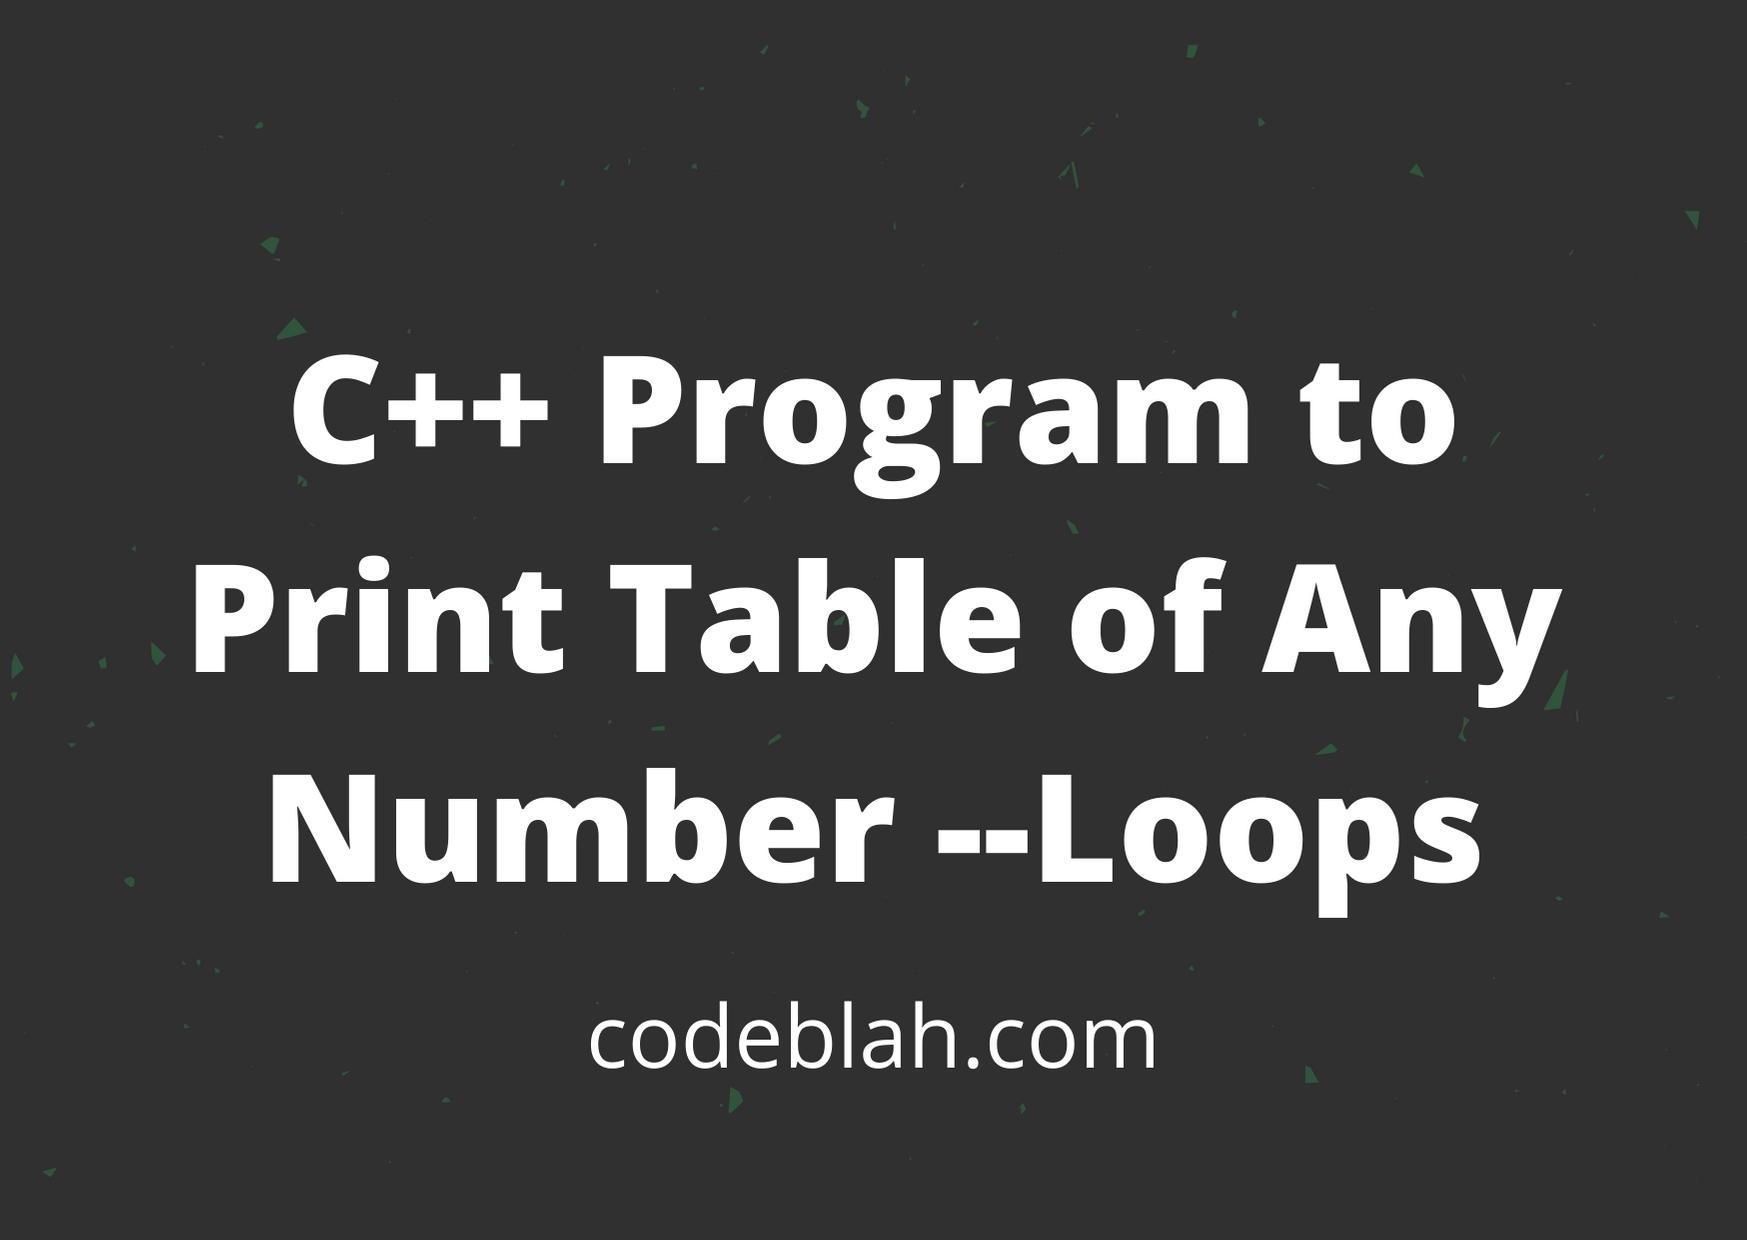 C++ Program to Print Table of Any Number --Loops